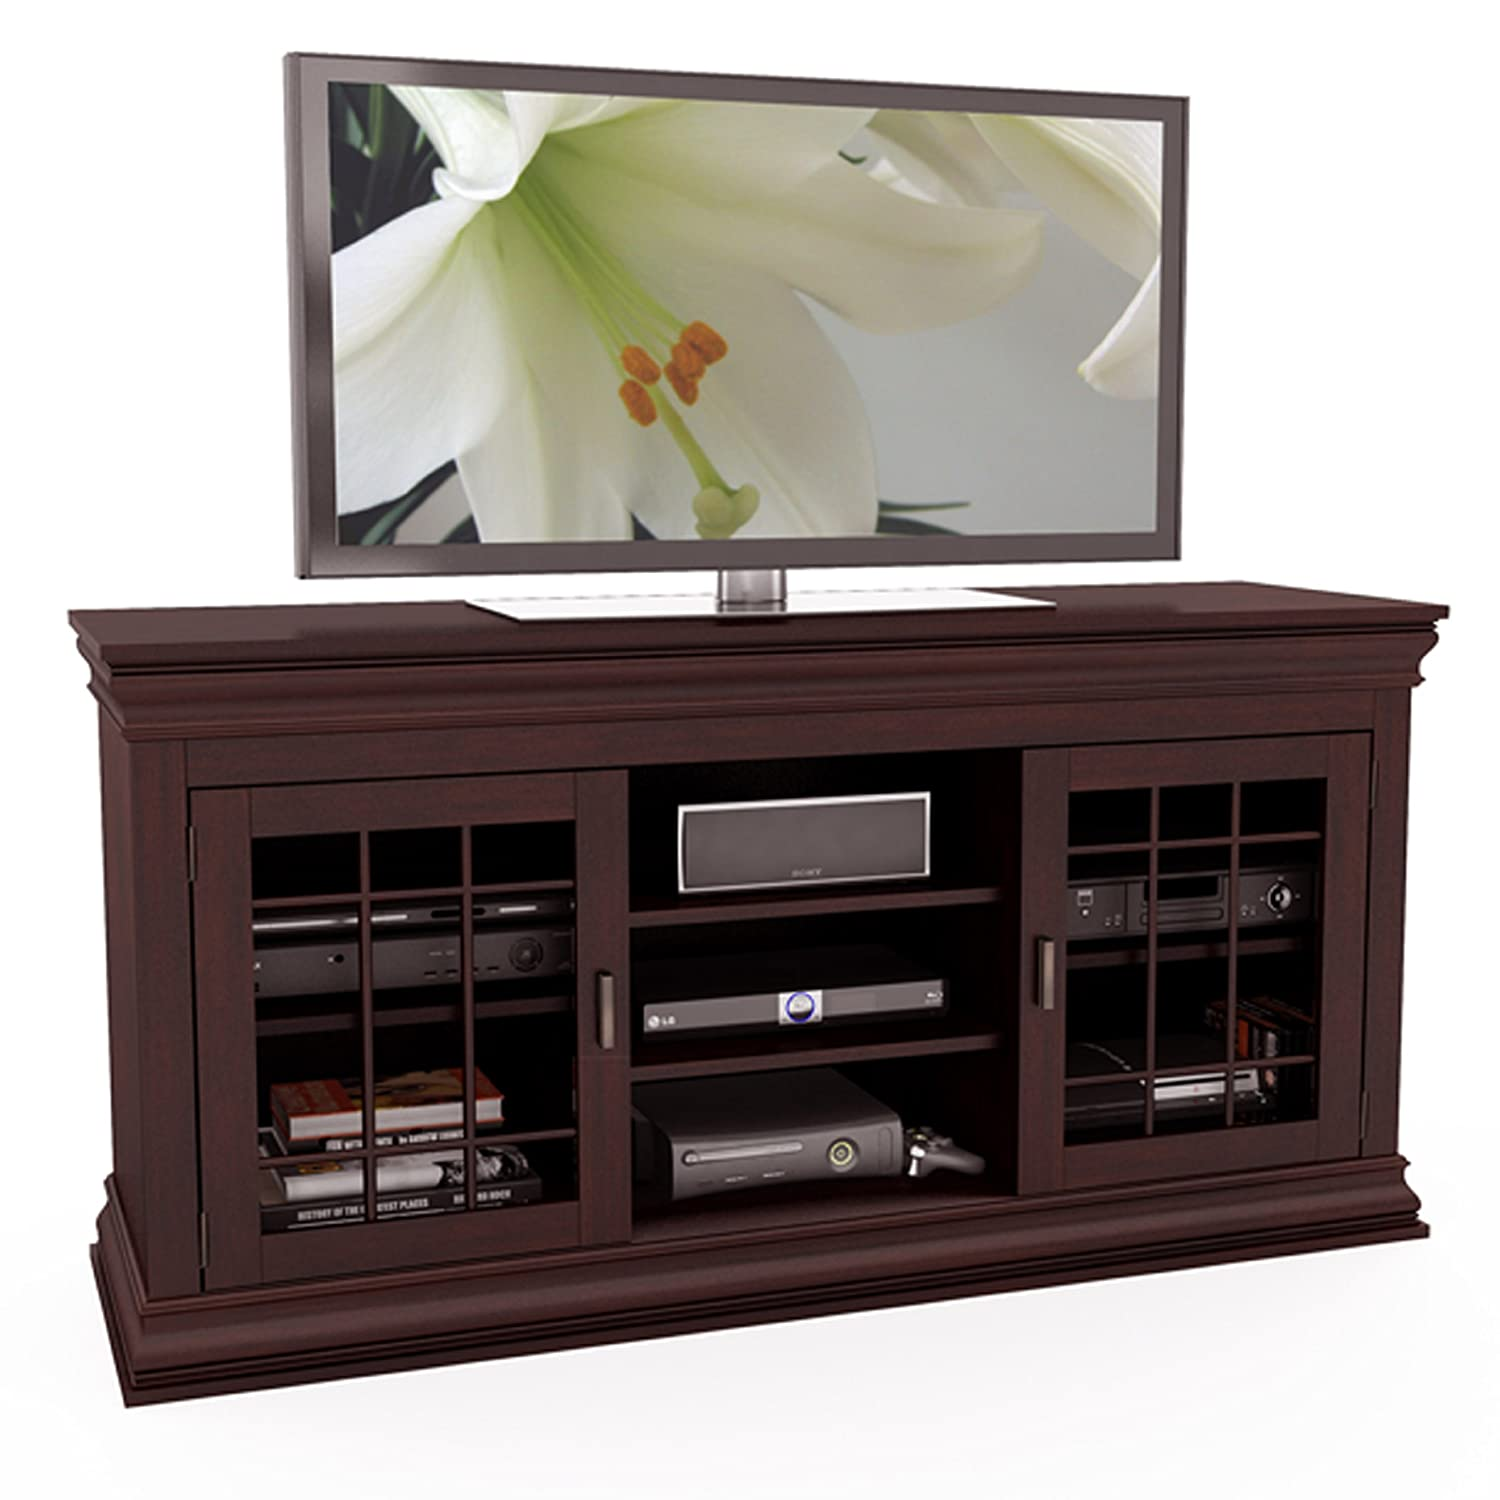 60 Tv Entertainment Center Part - 42: Amazon.com: Sonax B-231-NCT Carson 60-Inch Wood Veneer TV/Component Bench:  Kitchen U0026 Dining